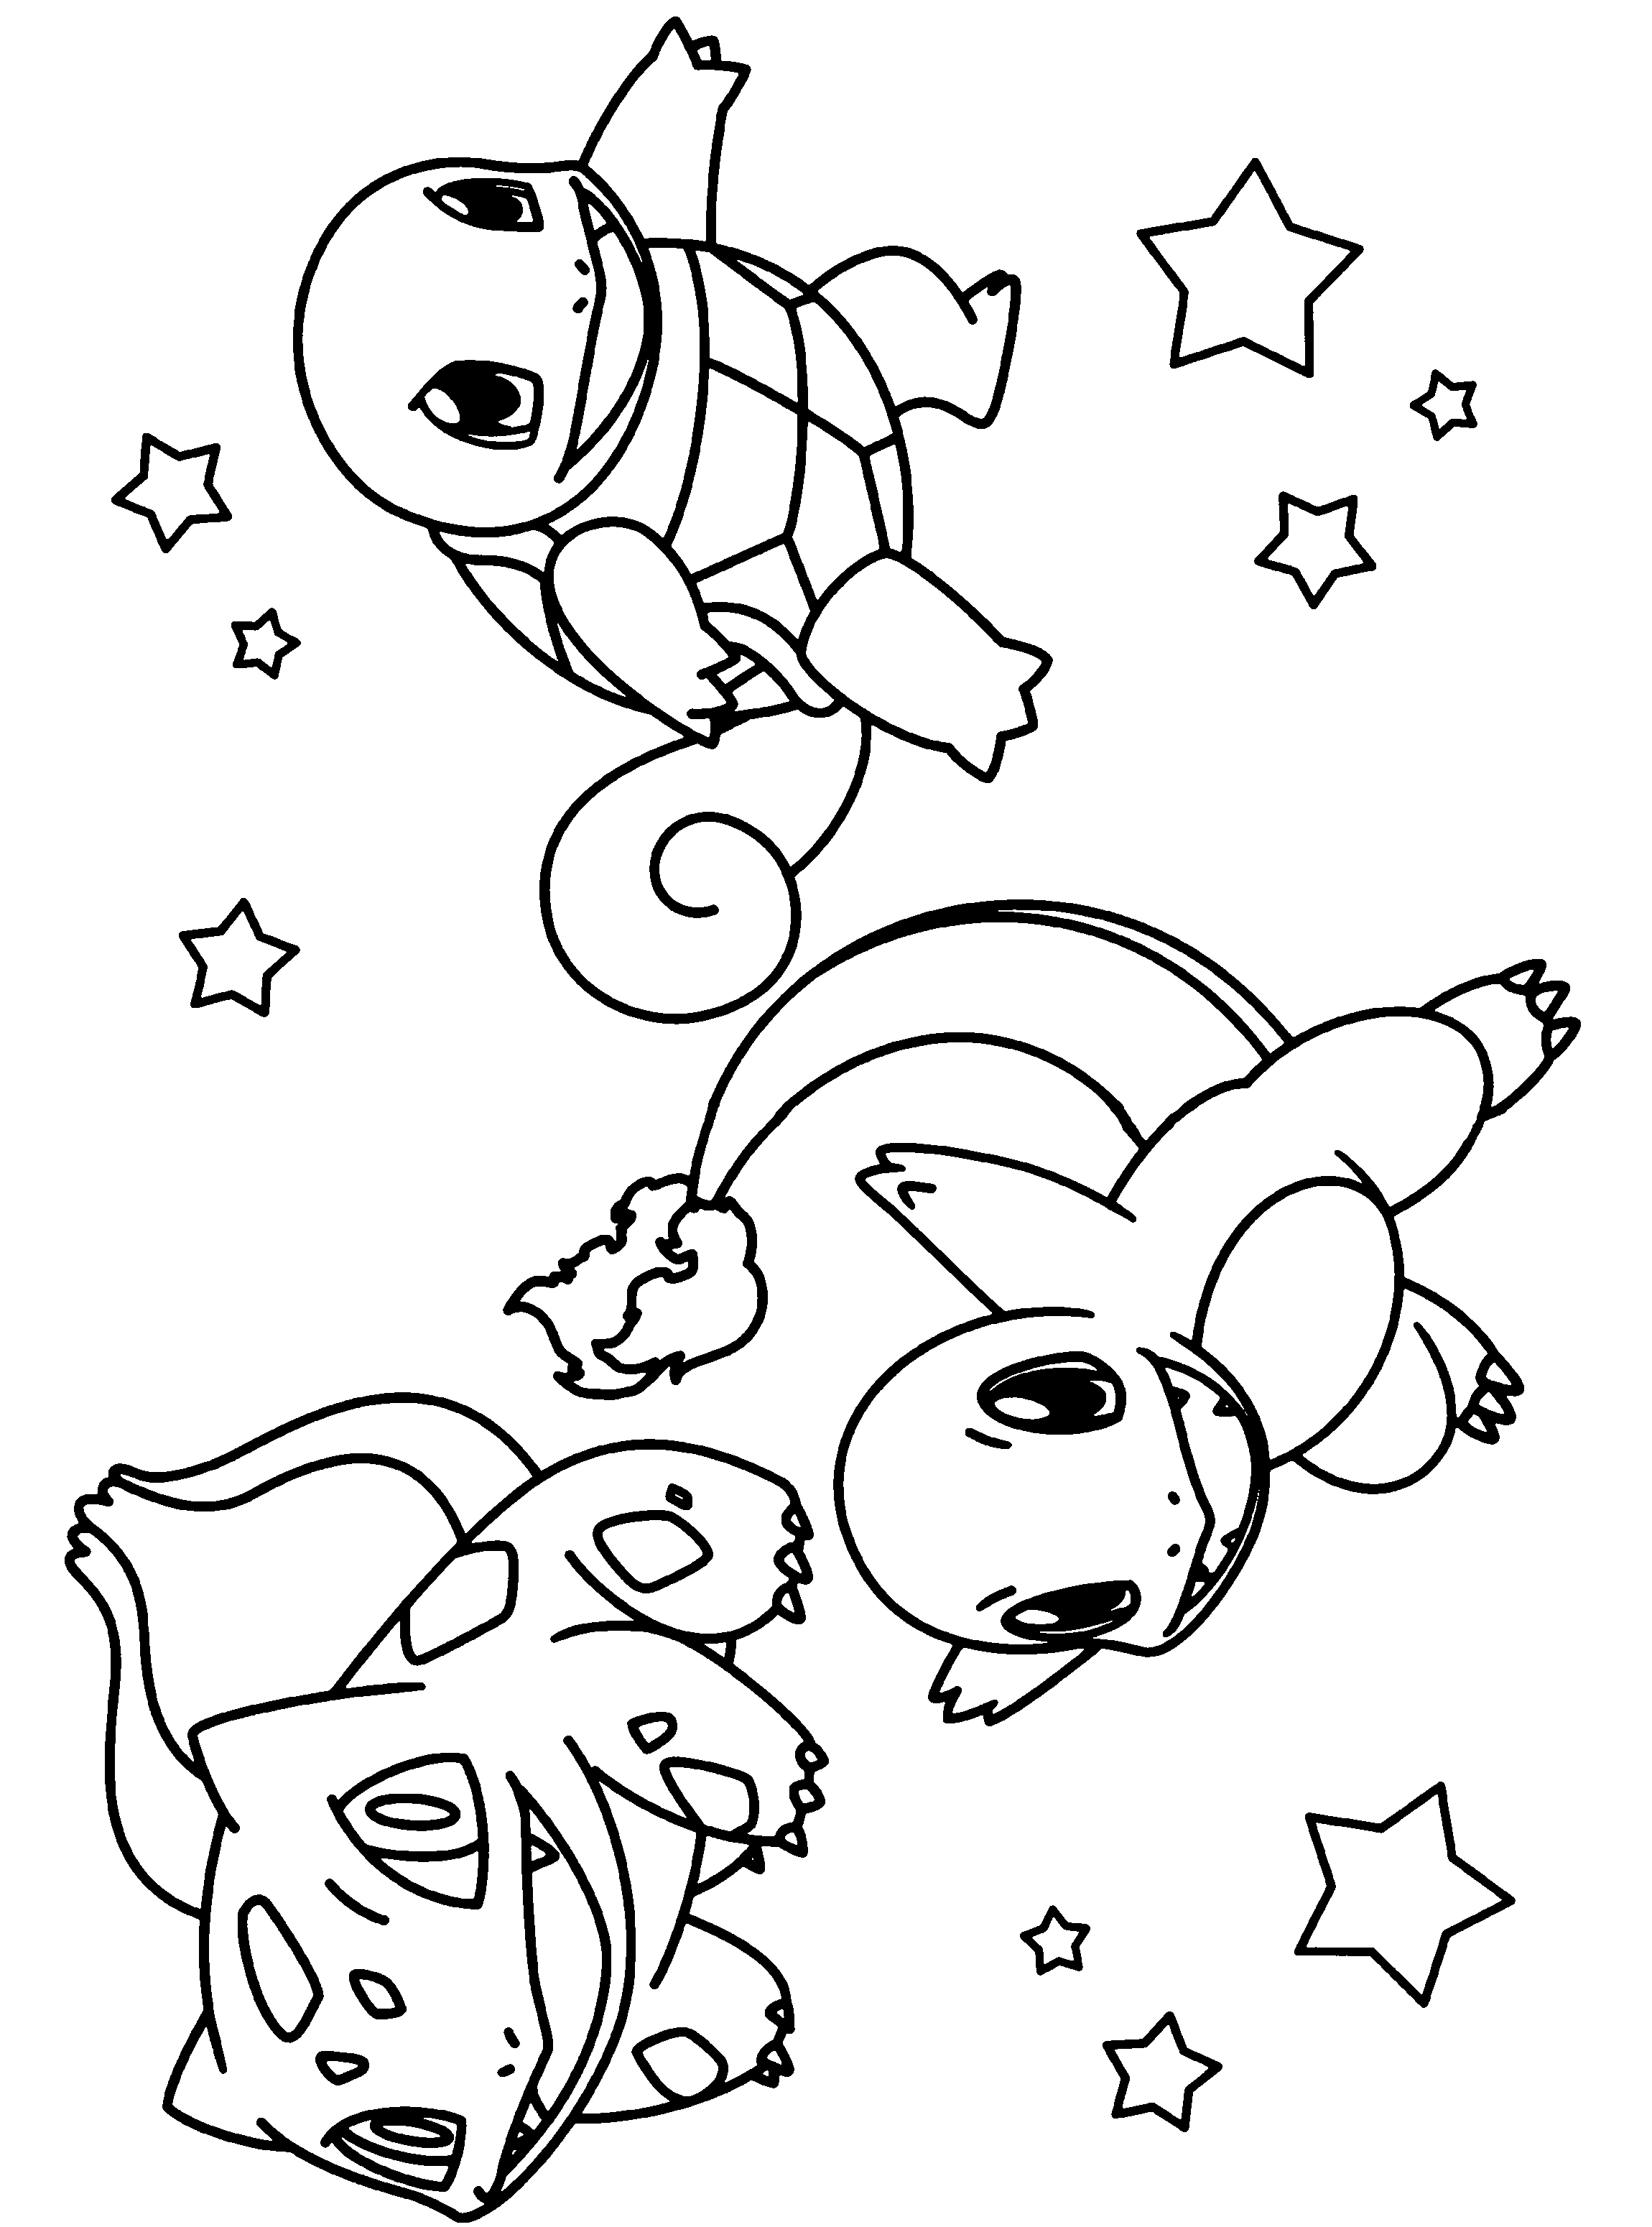 2300x3100 Awesome Bo The Go Coloring Page Rallytv Free Coloring Pages Download